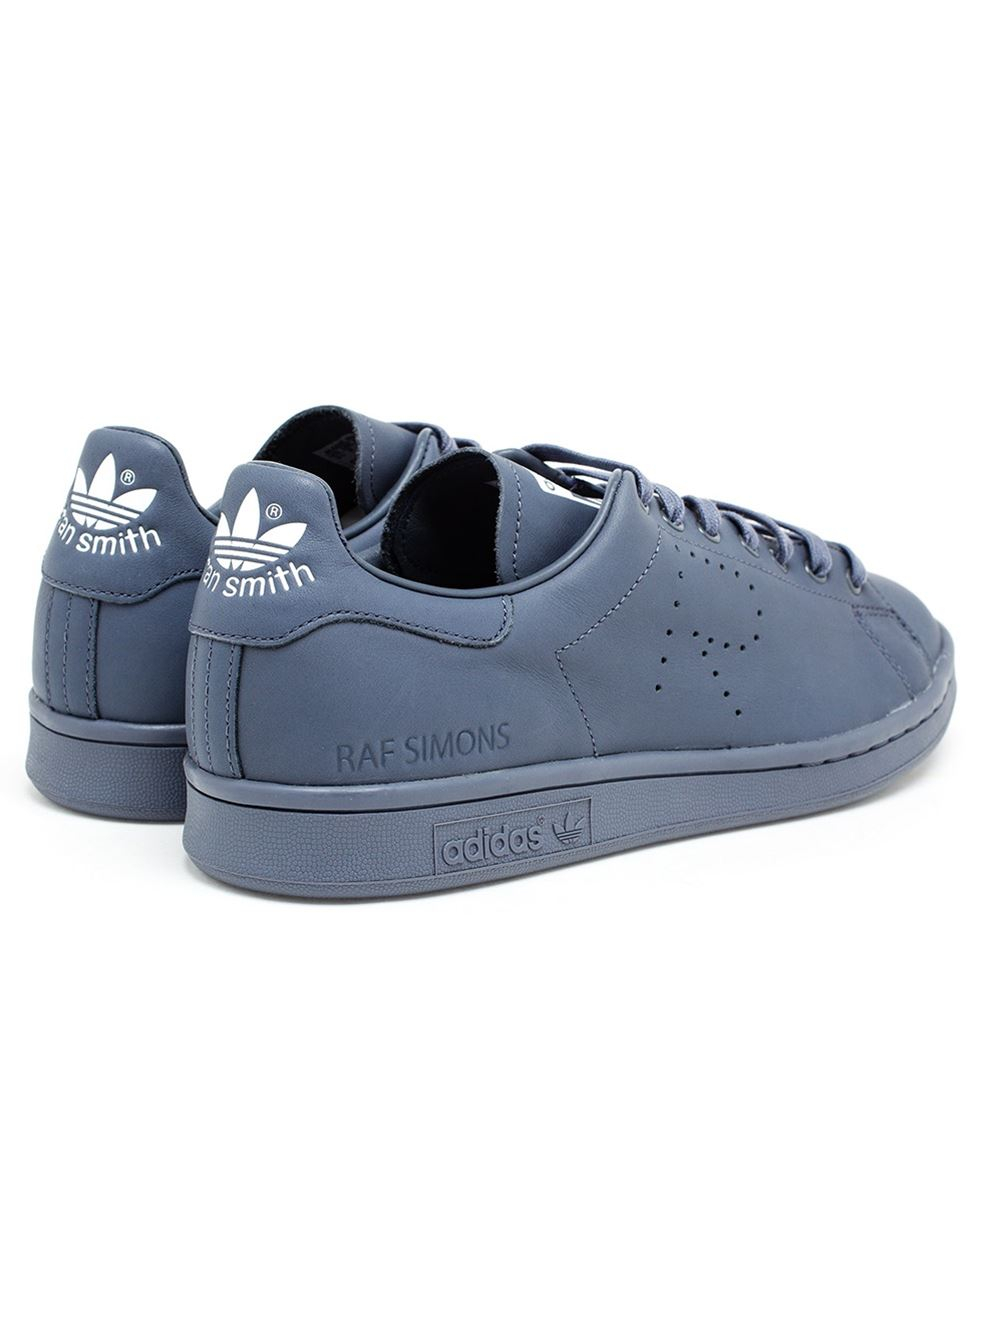 adidas stan smith grey. Black Bedroom Furniture Sets. Home Design Ideas